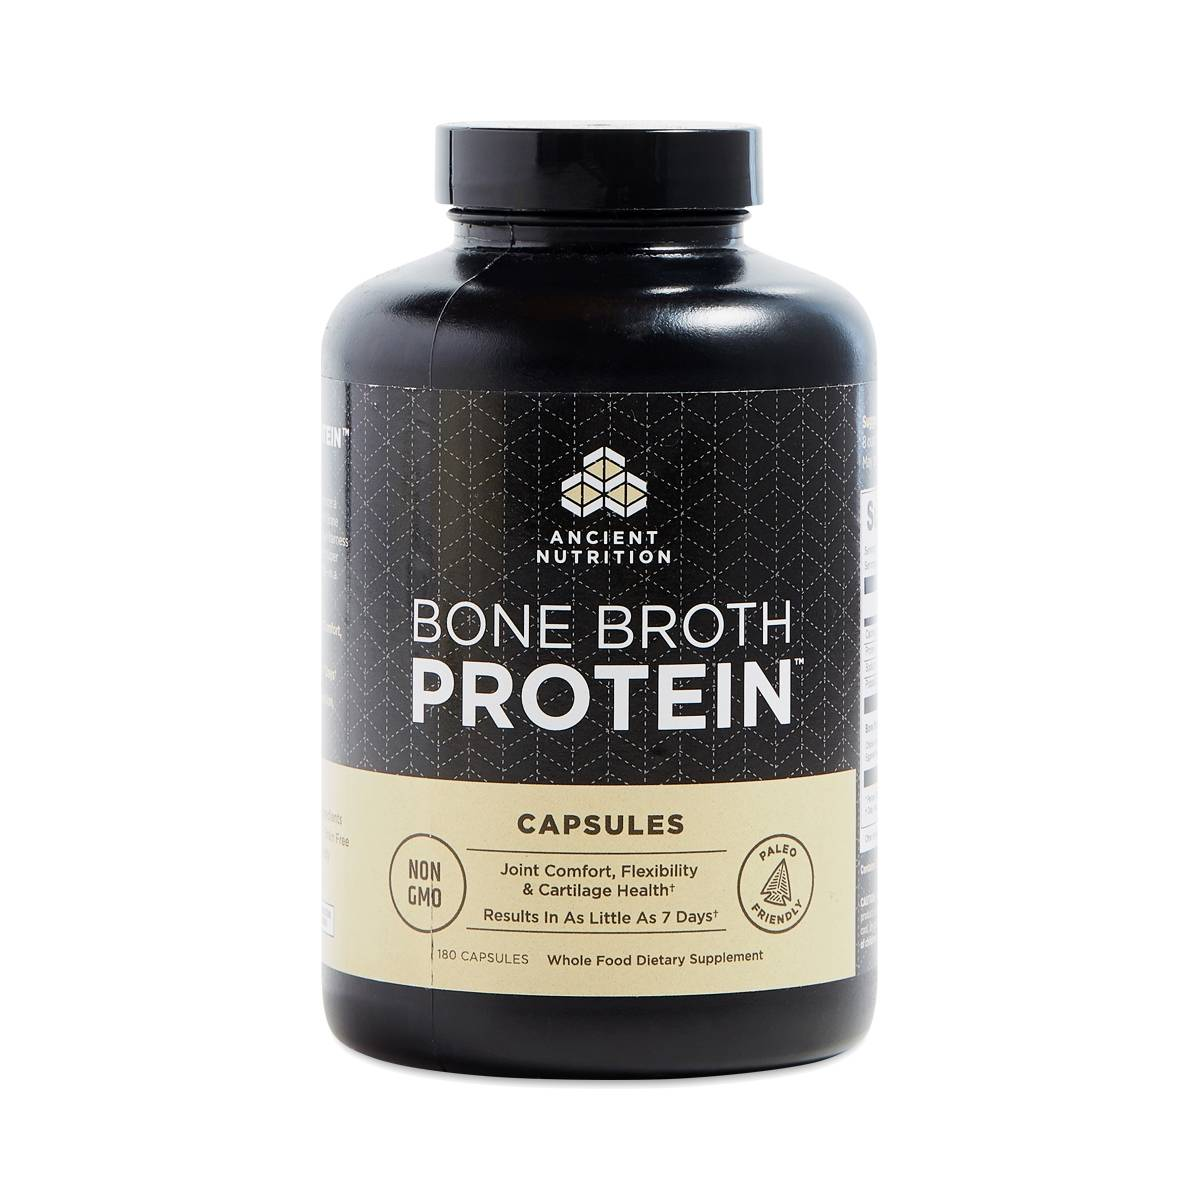 Ancient Nutrition Bone Broth Protein Capsules Thrive